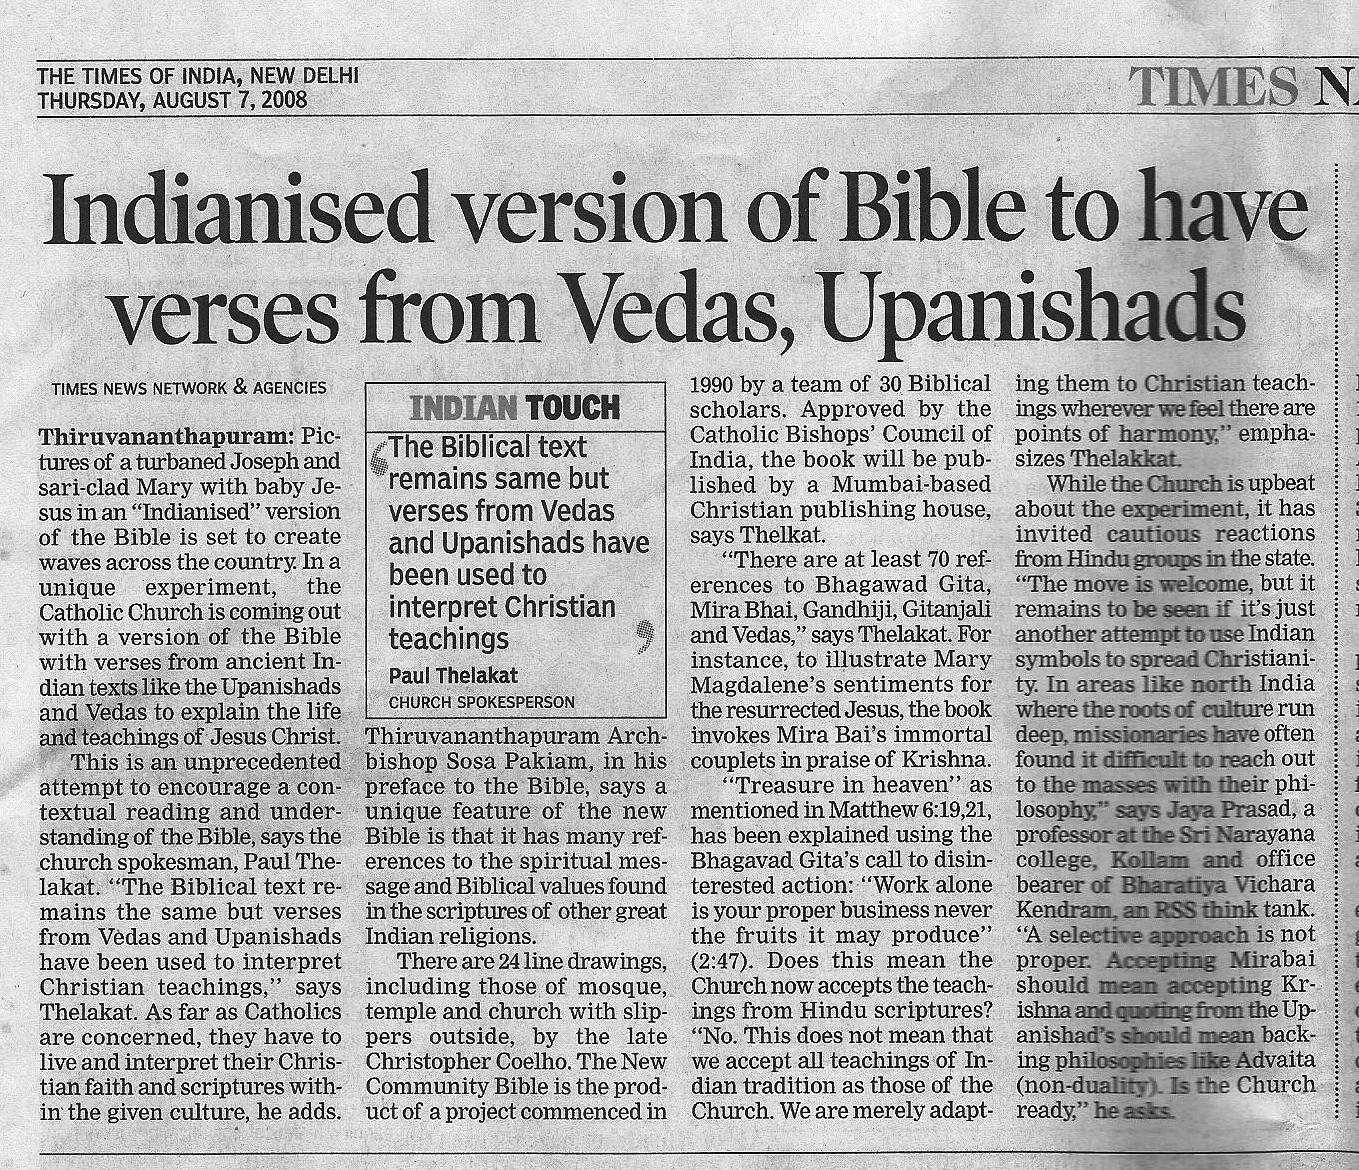 Catholic Church acknowledges teachings common to both the Bible and the Vedas